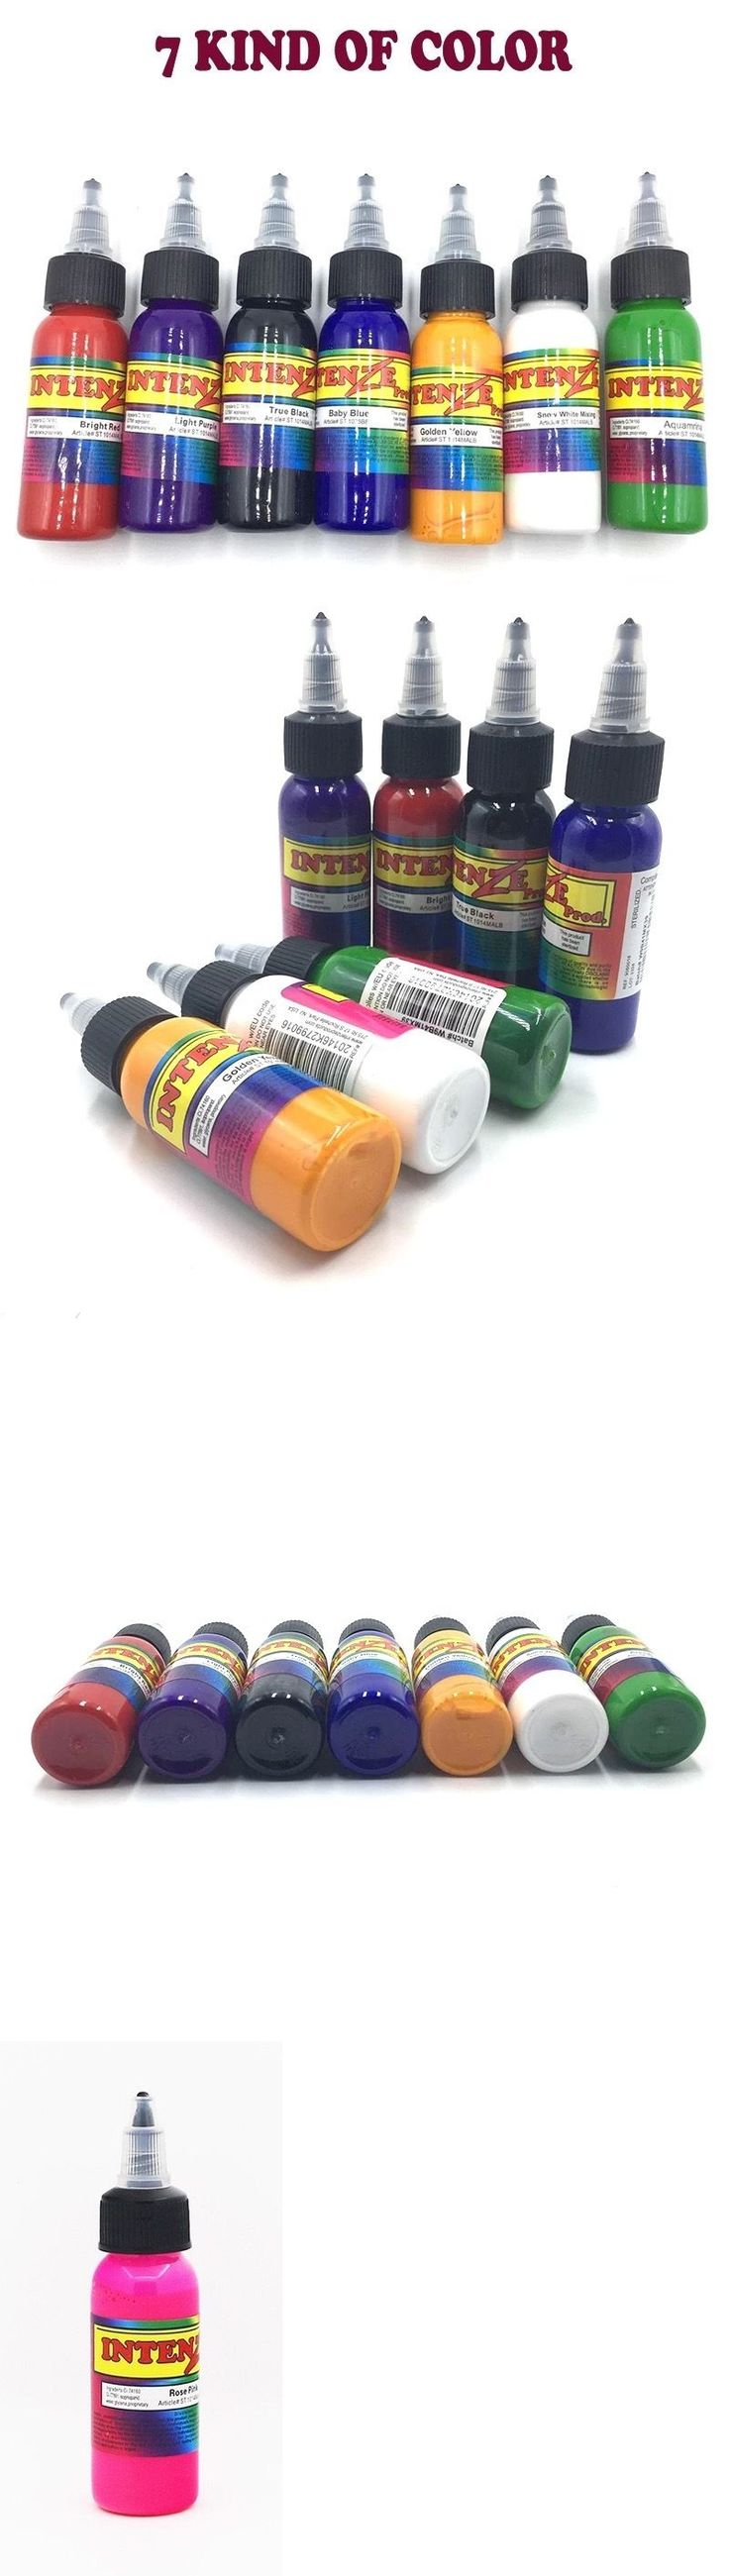 Tattoo Inks: Intenze Tattoo Ink 7 Colors Primary Ink Professional Set 1 Ounce 100% Authentic -> BUY IT NOW ONLY: $69 on eBay!